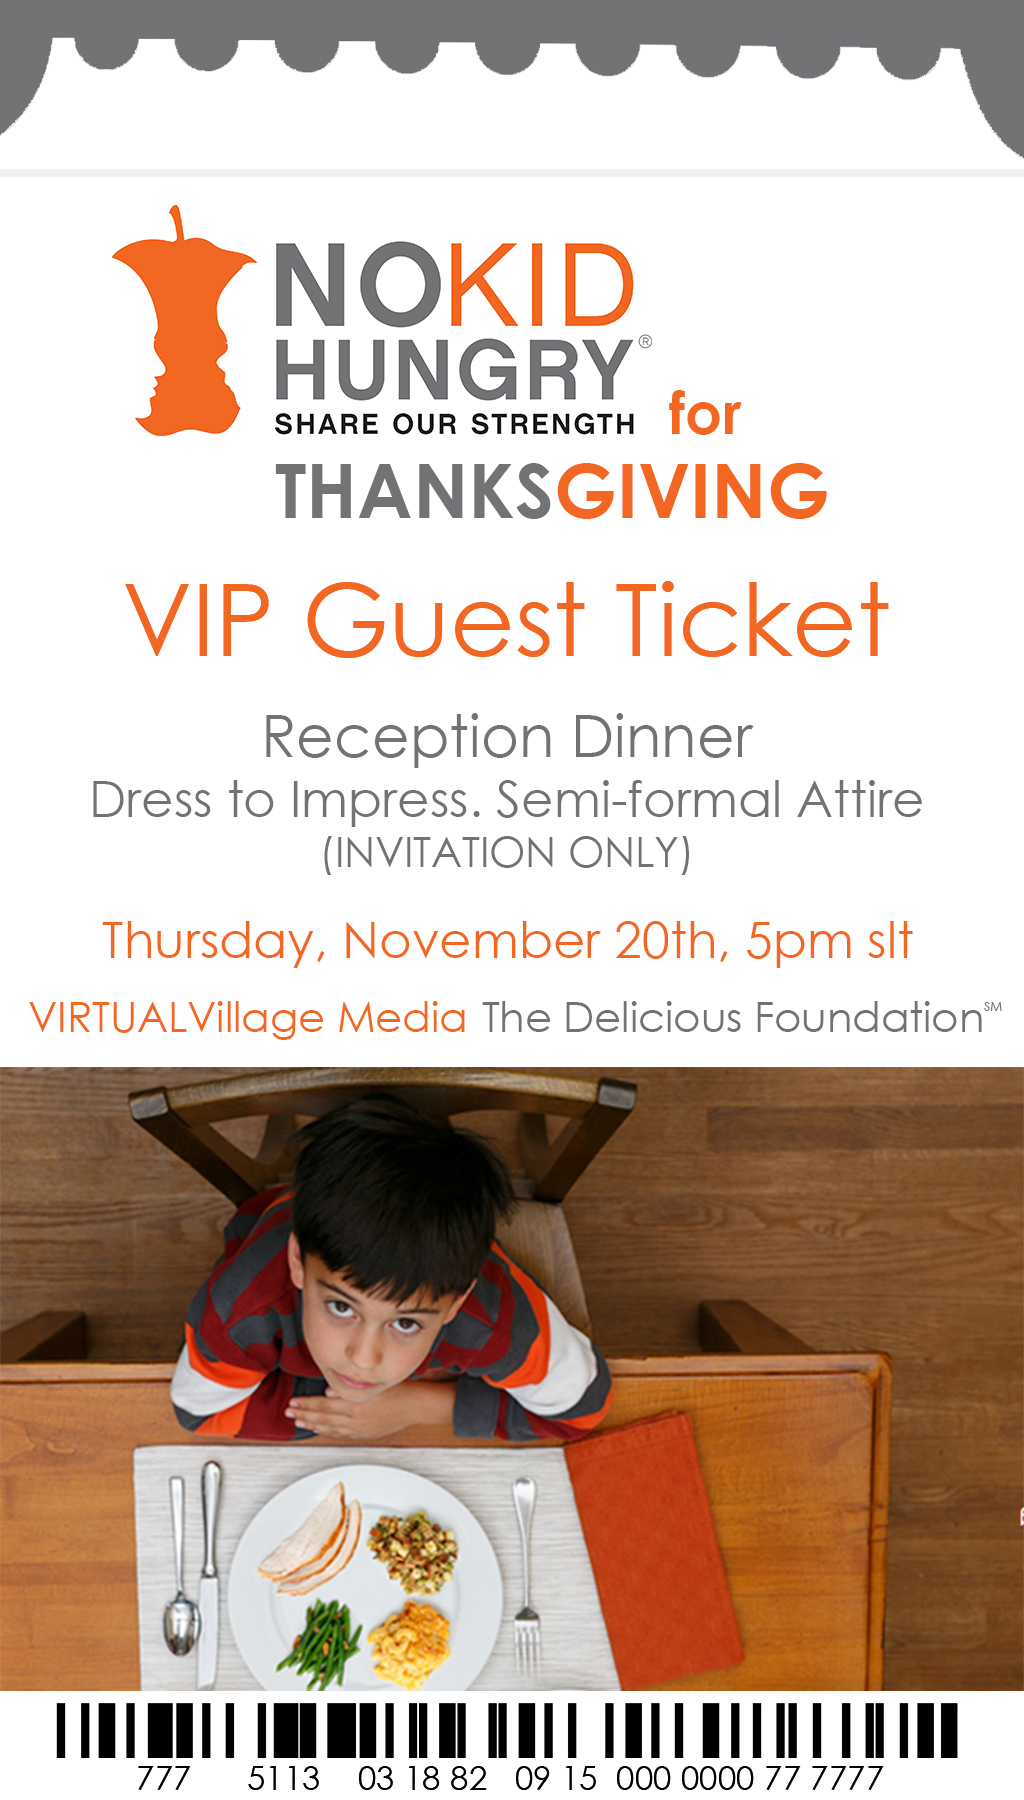 NO KID HUNGRY for Thanksgiving Ticket